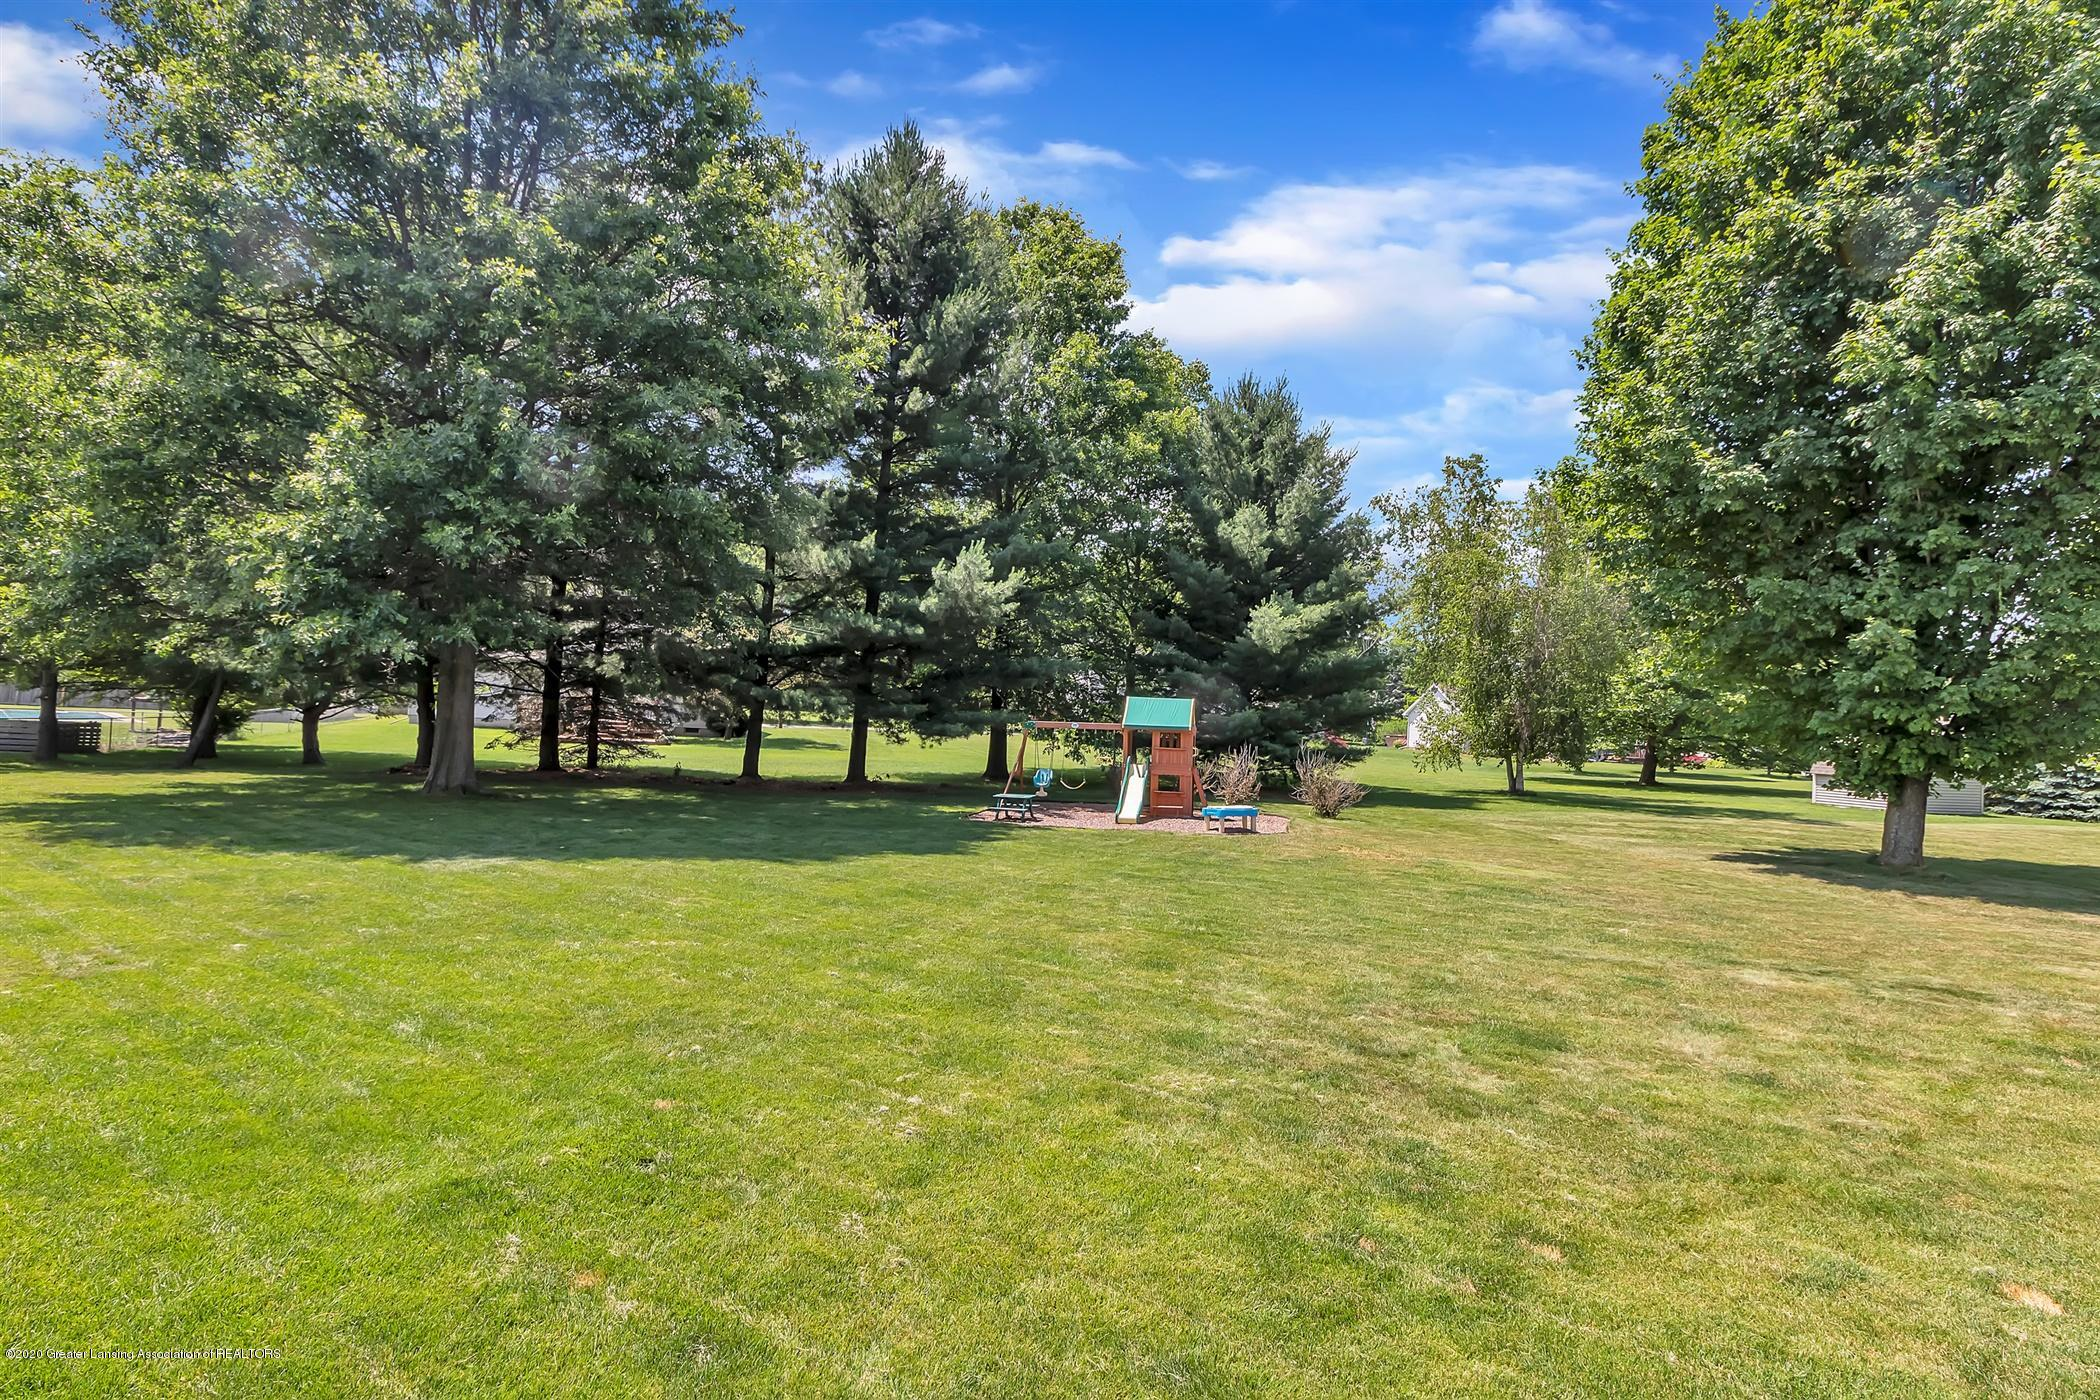 2945 Whistlewood Way - 39-2945Whistlewood-WindowStill-Real - 39